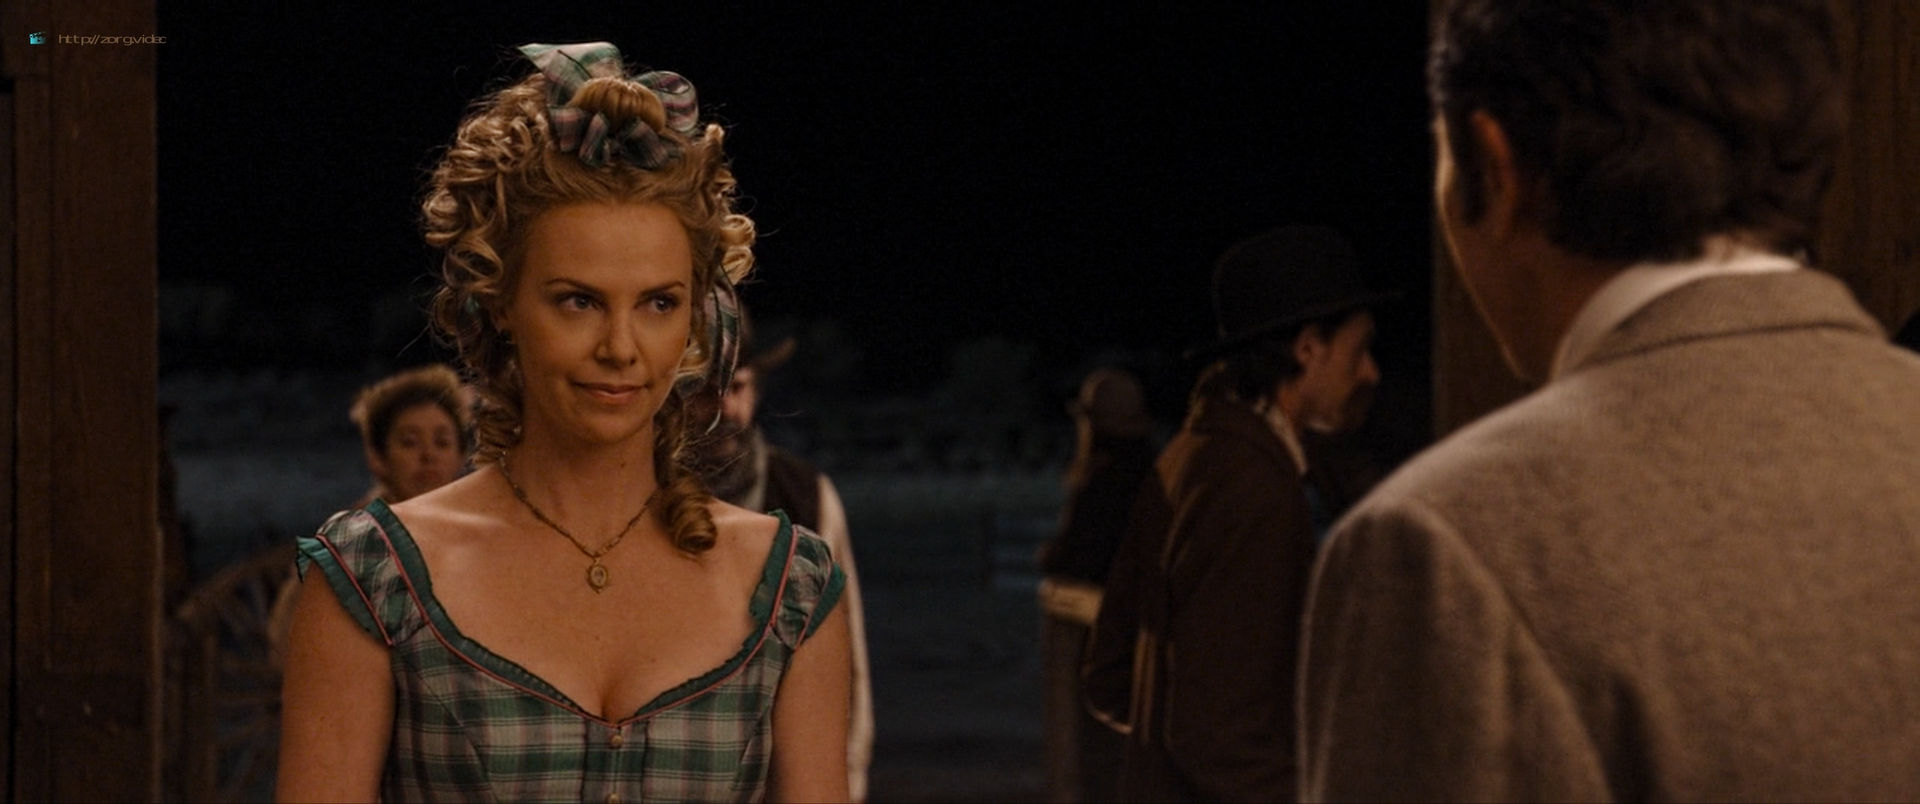 Charlize Theron sexy Amanda Seyfried and Sarah Silverman hot - A Million Ways to Die in the West (2014) HD 1080p BluRay (10)